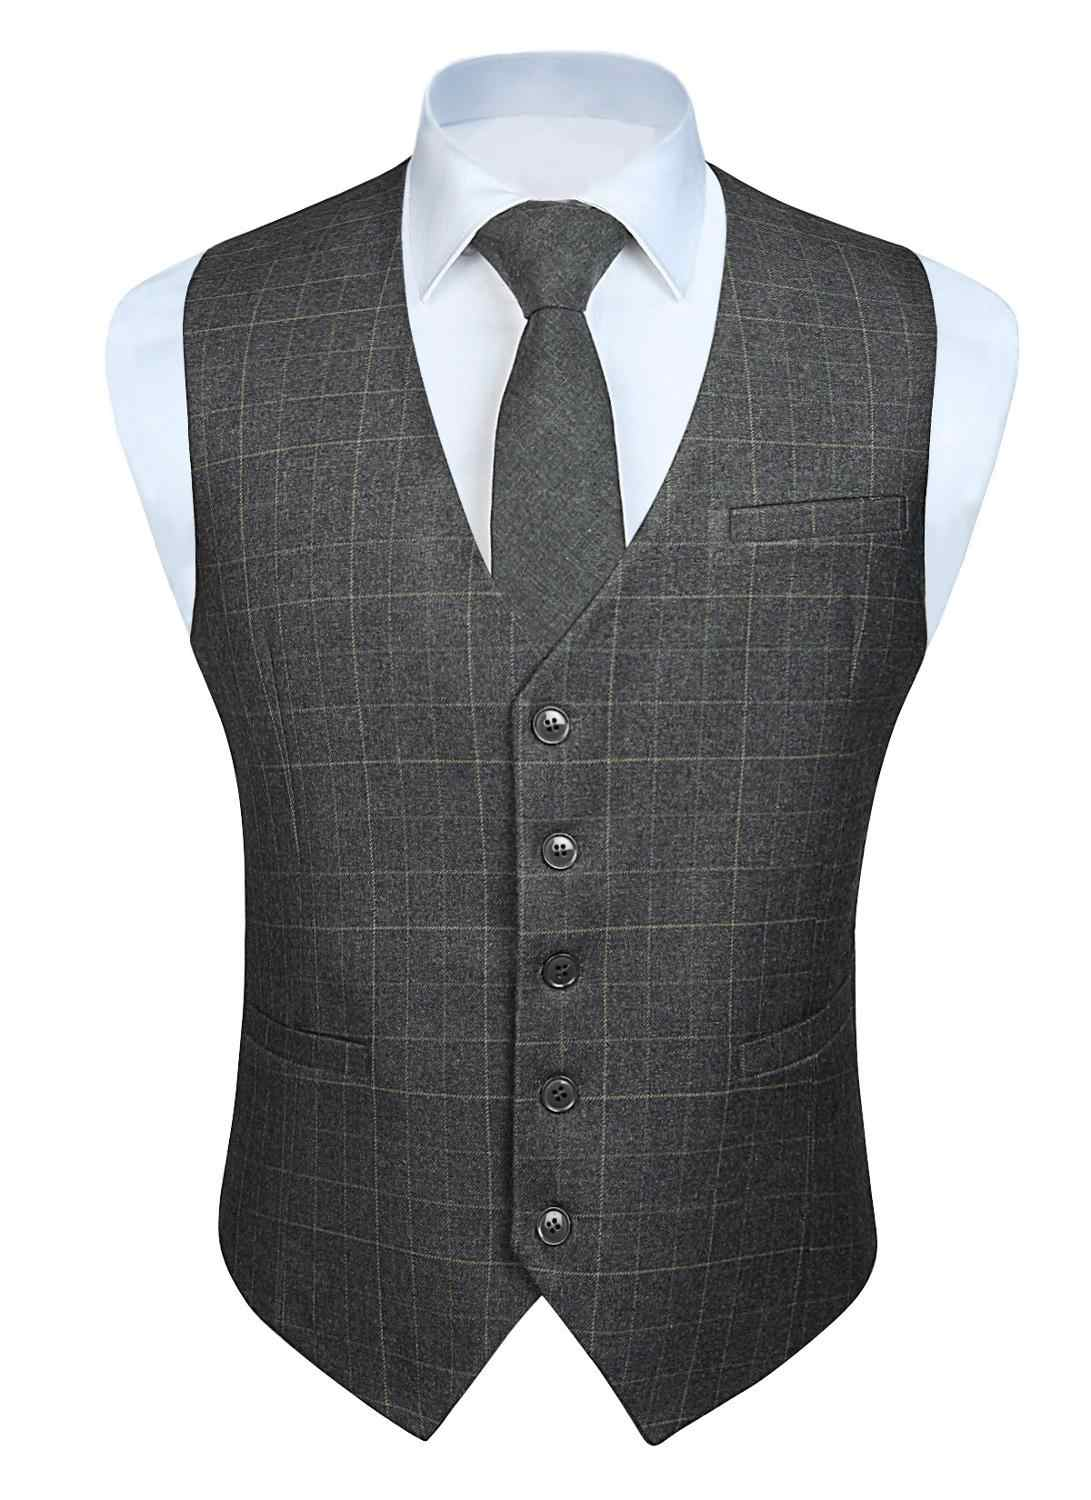 Mode Effen Kleur mannen Wedding Zaken Formele Kleding Vest Pak Slim Fit Casual Tuxedo Plaid Vest